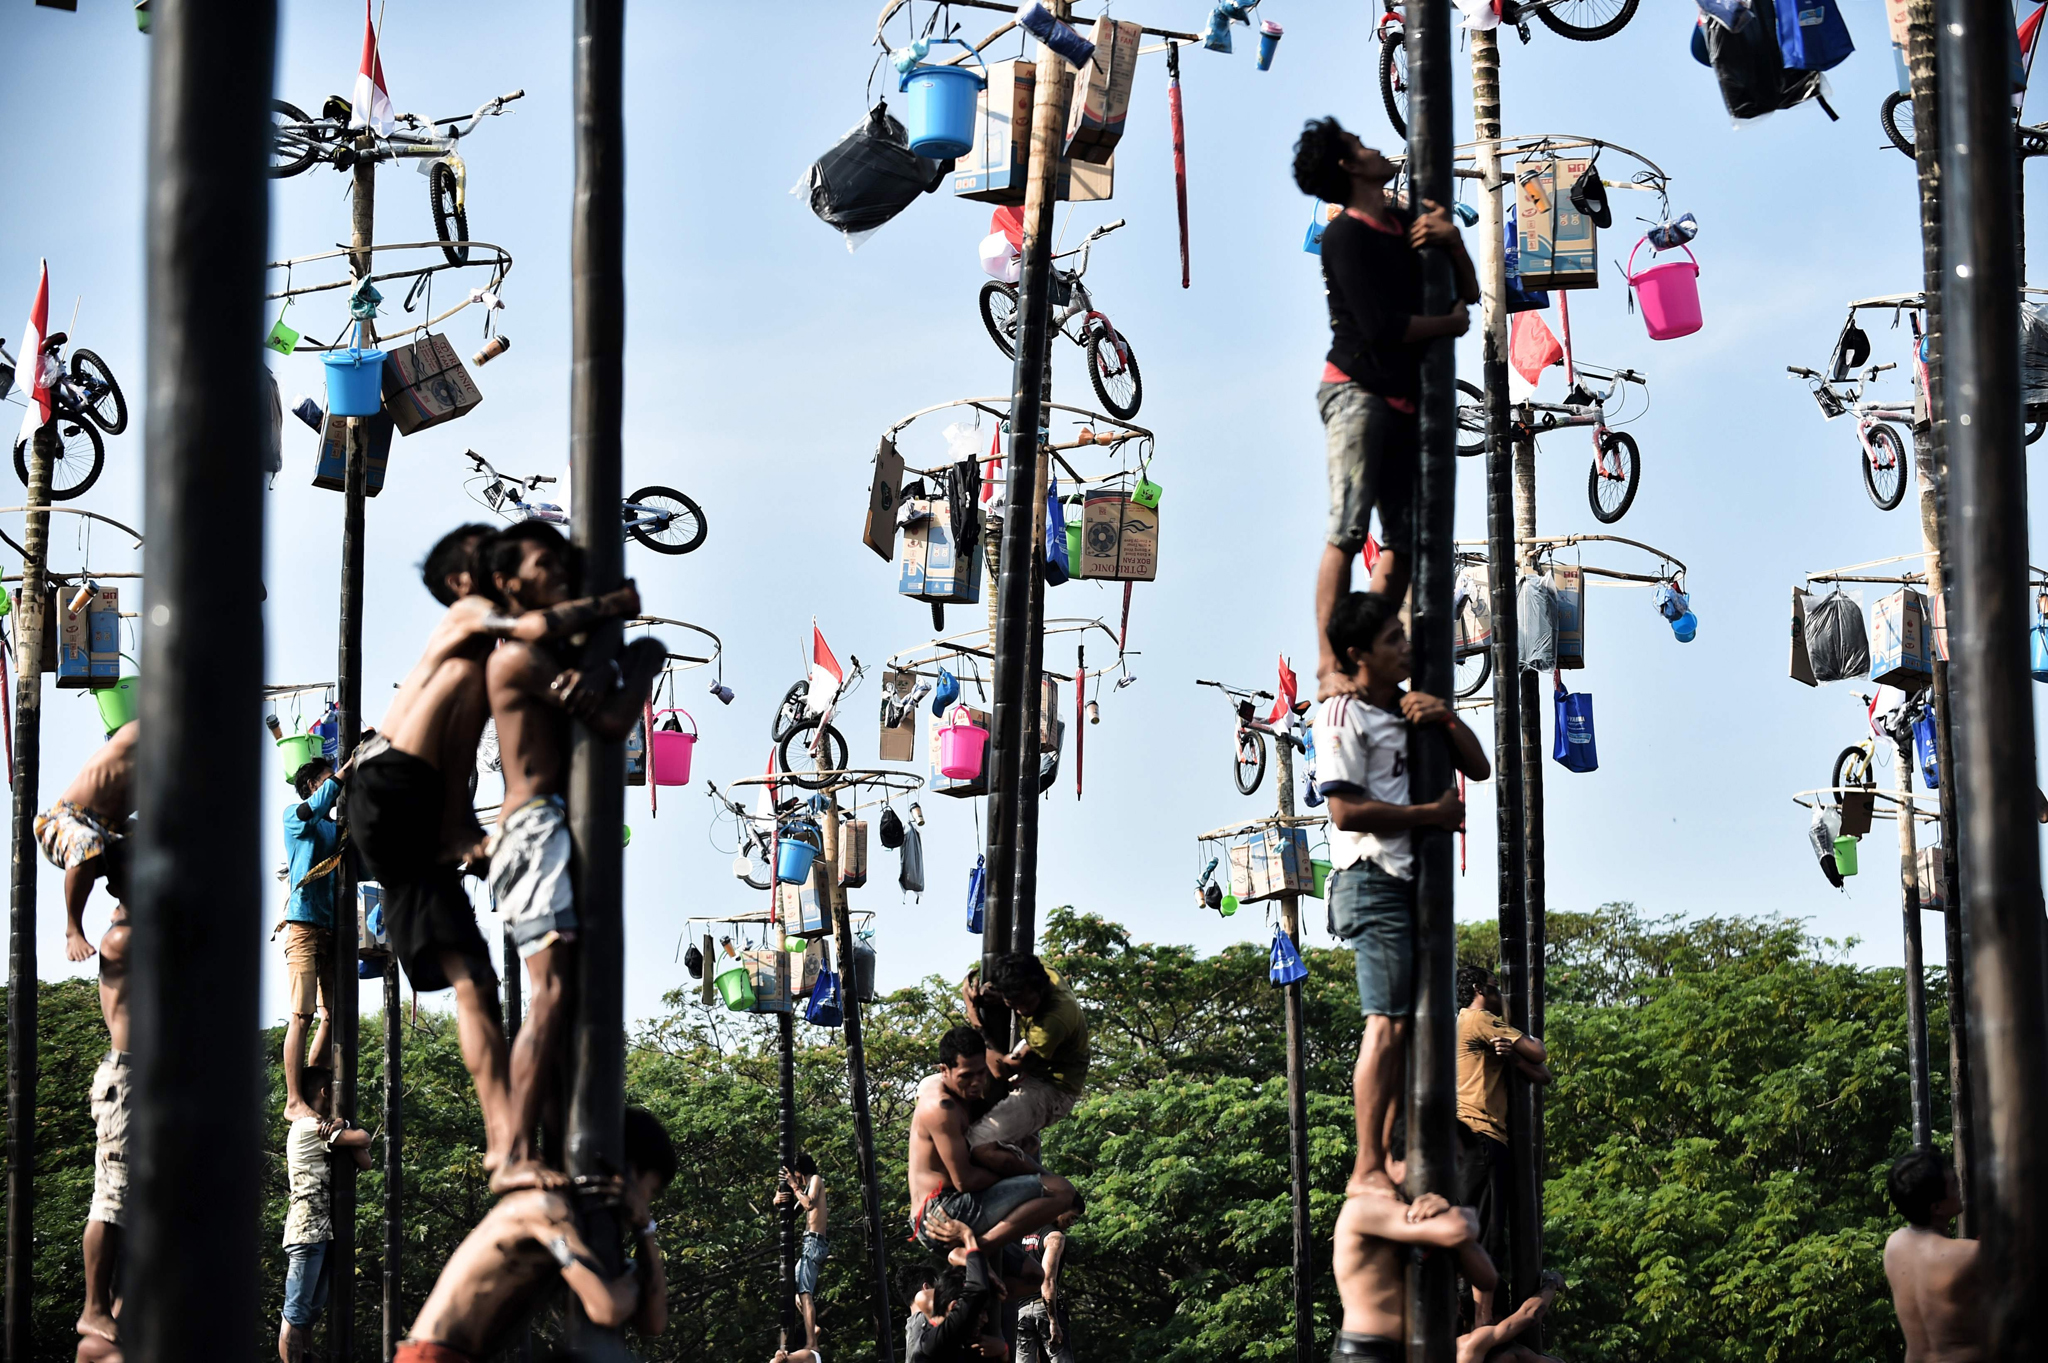 Participants struggle to reach the prizes on the top of greasy slippery poles in Jakarta on August 17, 2016, as part of Indonesia's celebrations to mark its 71st independent day anniversary.